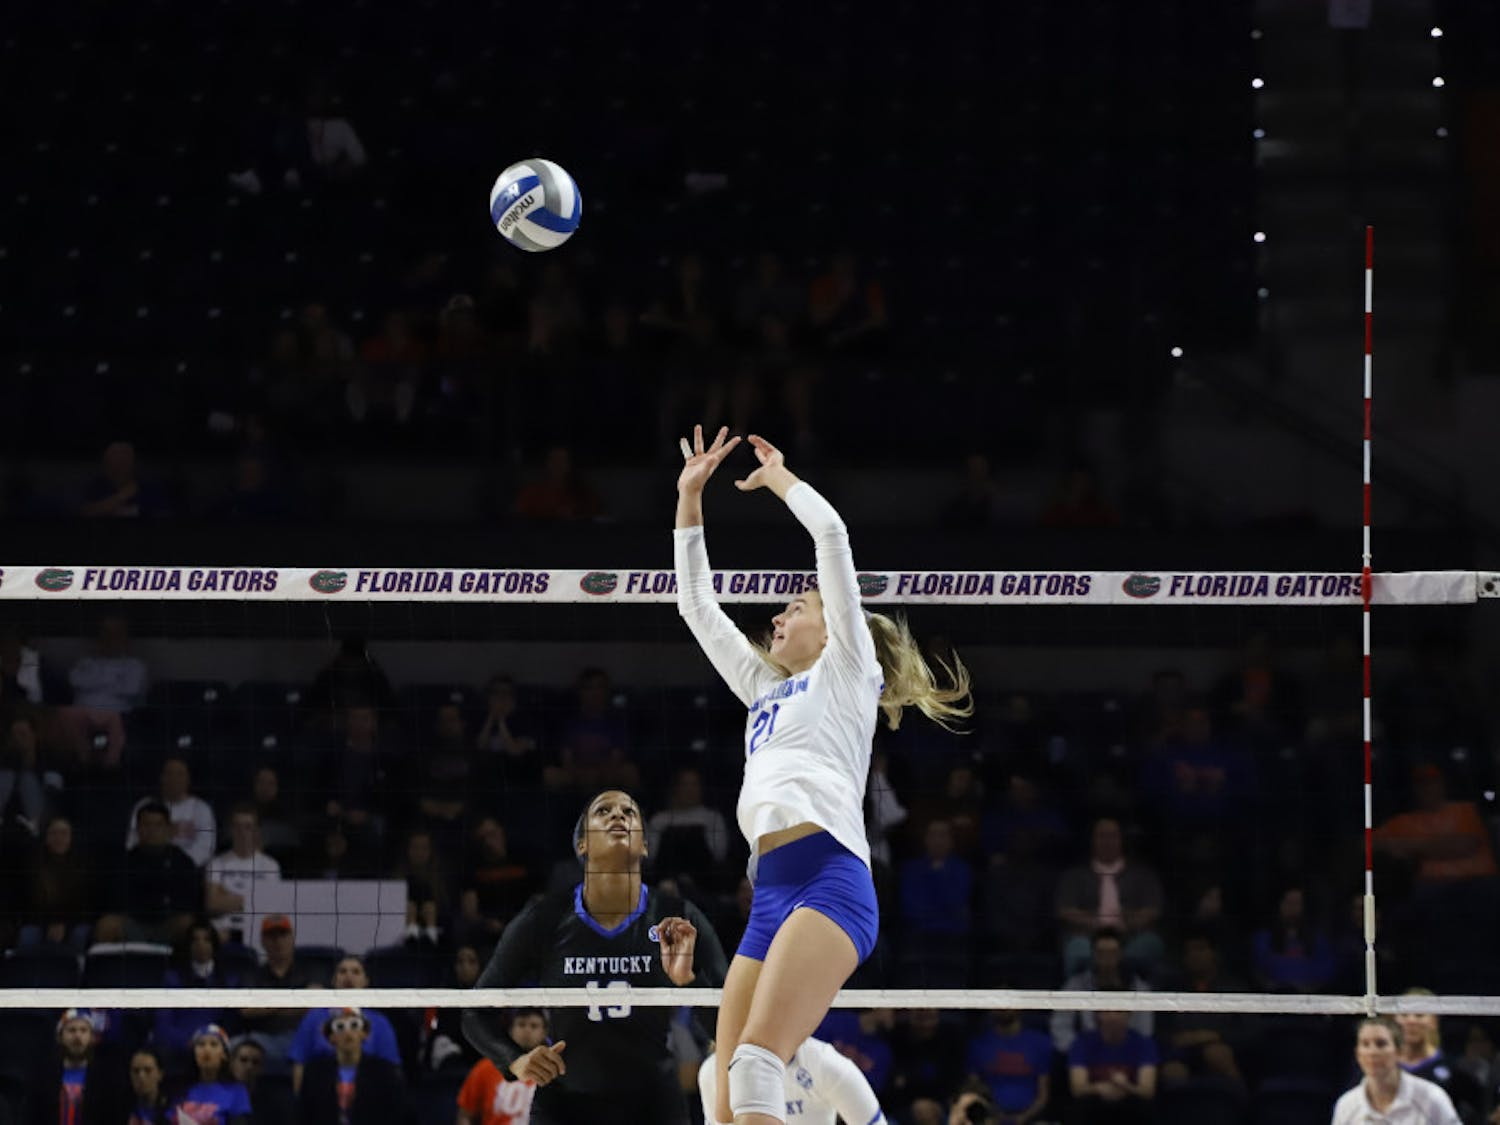 Now-junior Marlie Monserez sets for the Gators at last year's home match versus Kentucky. The setter and her teammates will be back in the O'Connell Center Friday for the first home match of the 2020 season.